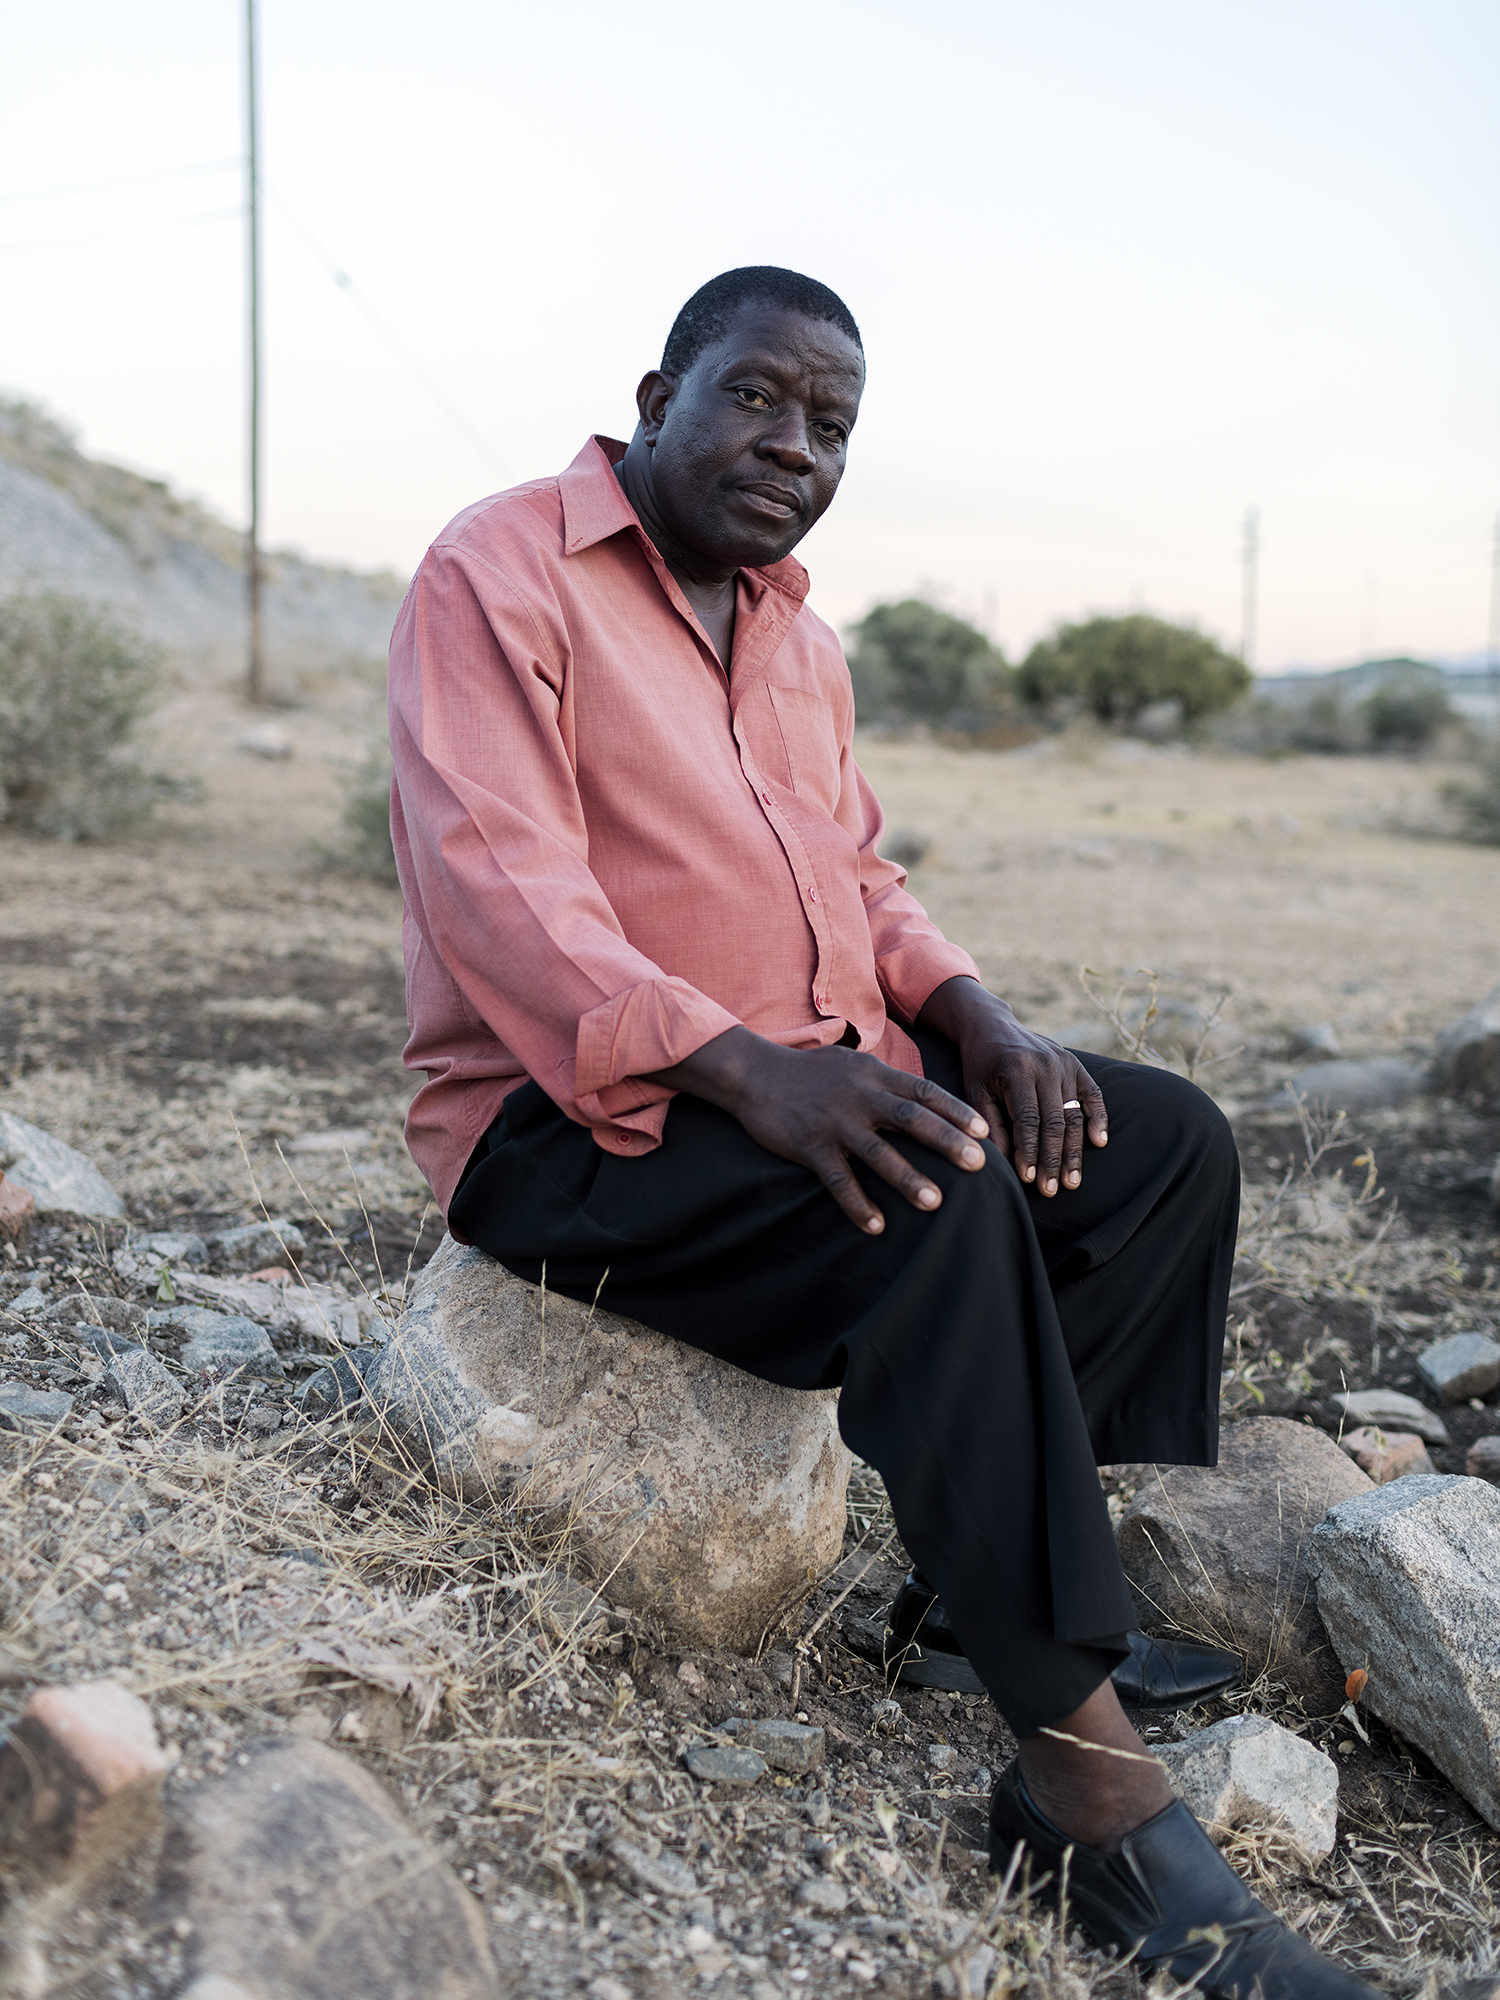 Isaac Mahlakwana, 59, Relocated from Maotsi Village to Magobading Township in 2003, Limpopo, Eastern Limb